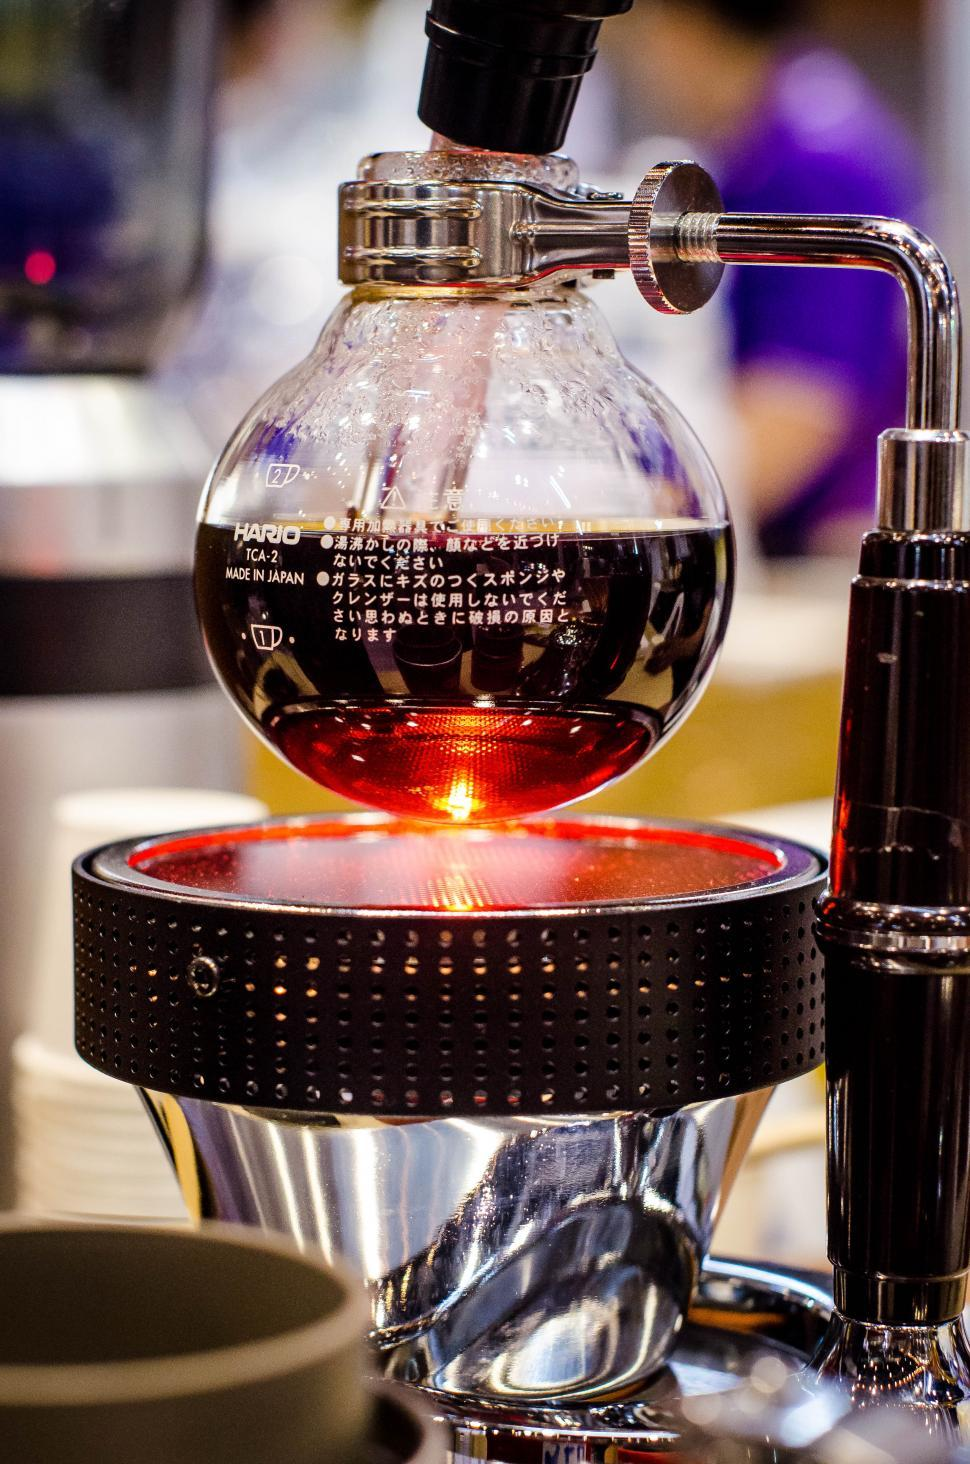 Download Free Stock HD Photo of Coffee maker over heat Online